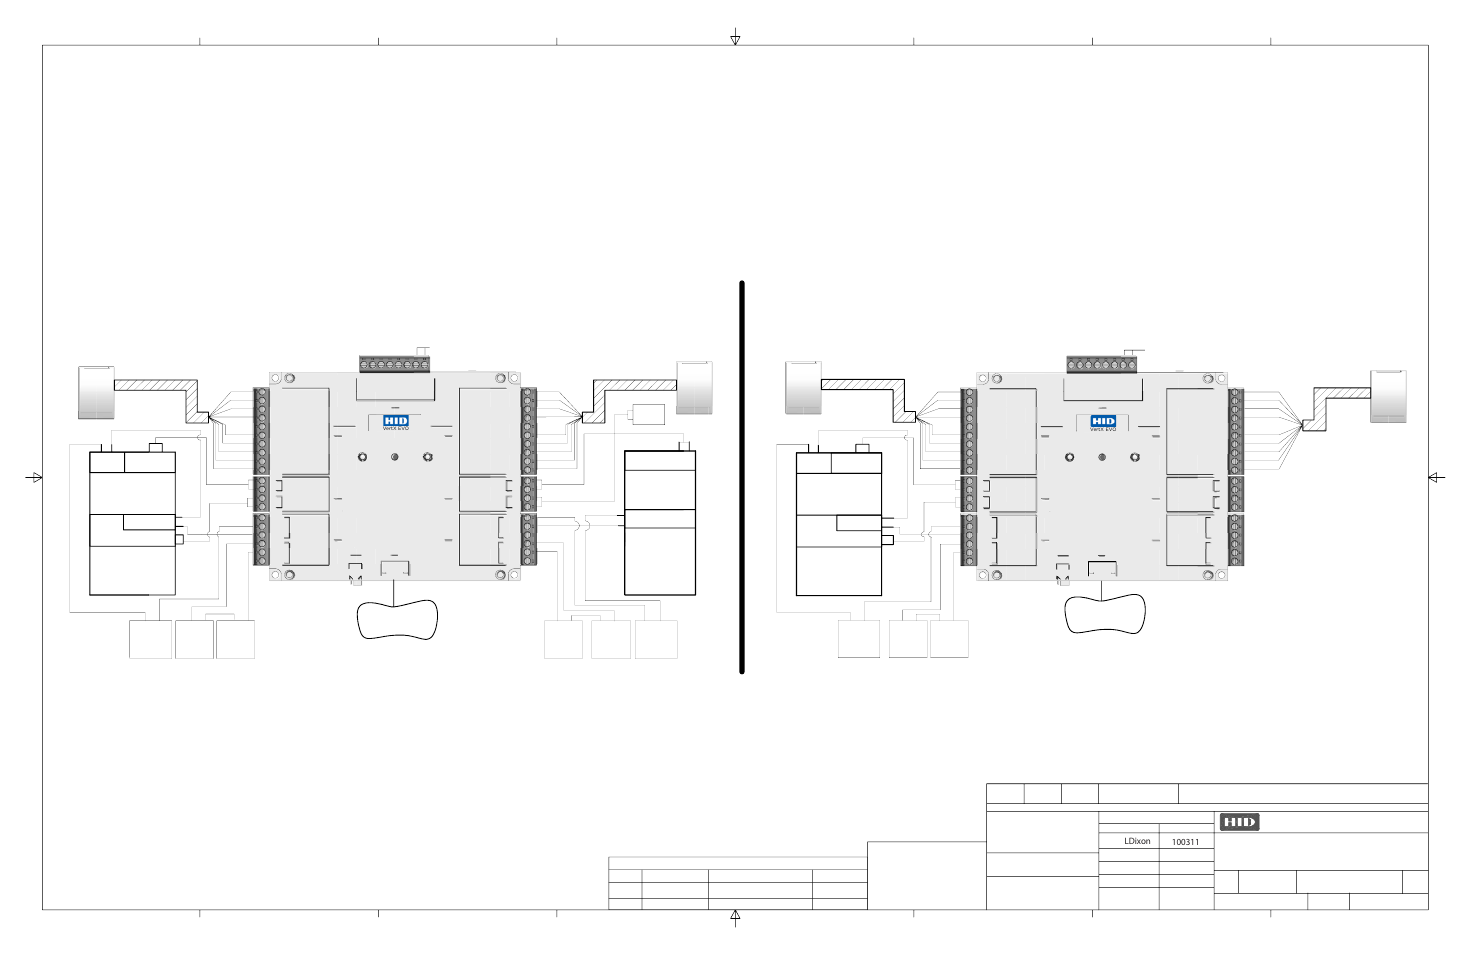 hid vertx v2000 wiring example installation guide page1 hid vertx v2000 wiring example installation guide user manual 1 page HID Ballast Schematic at bakdesigns.co